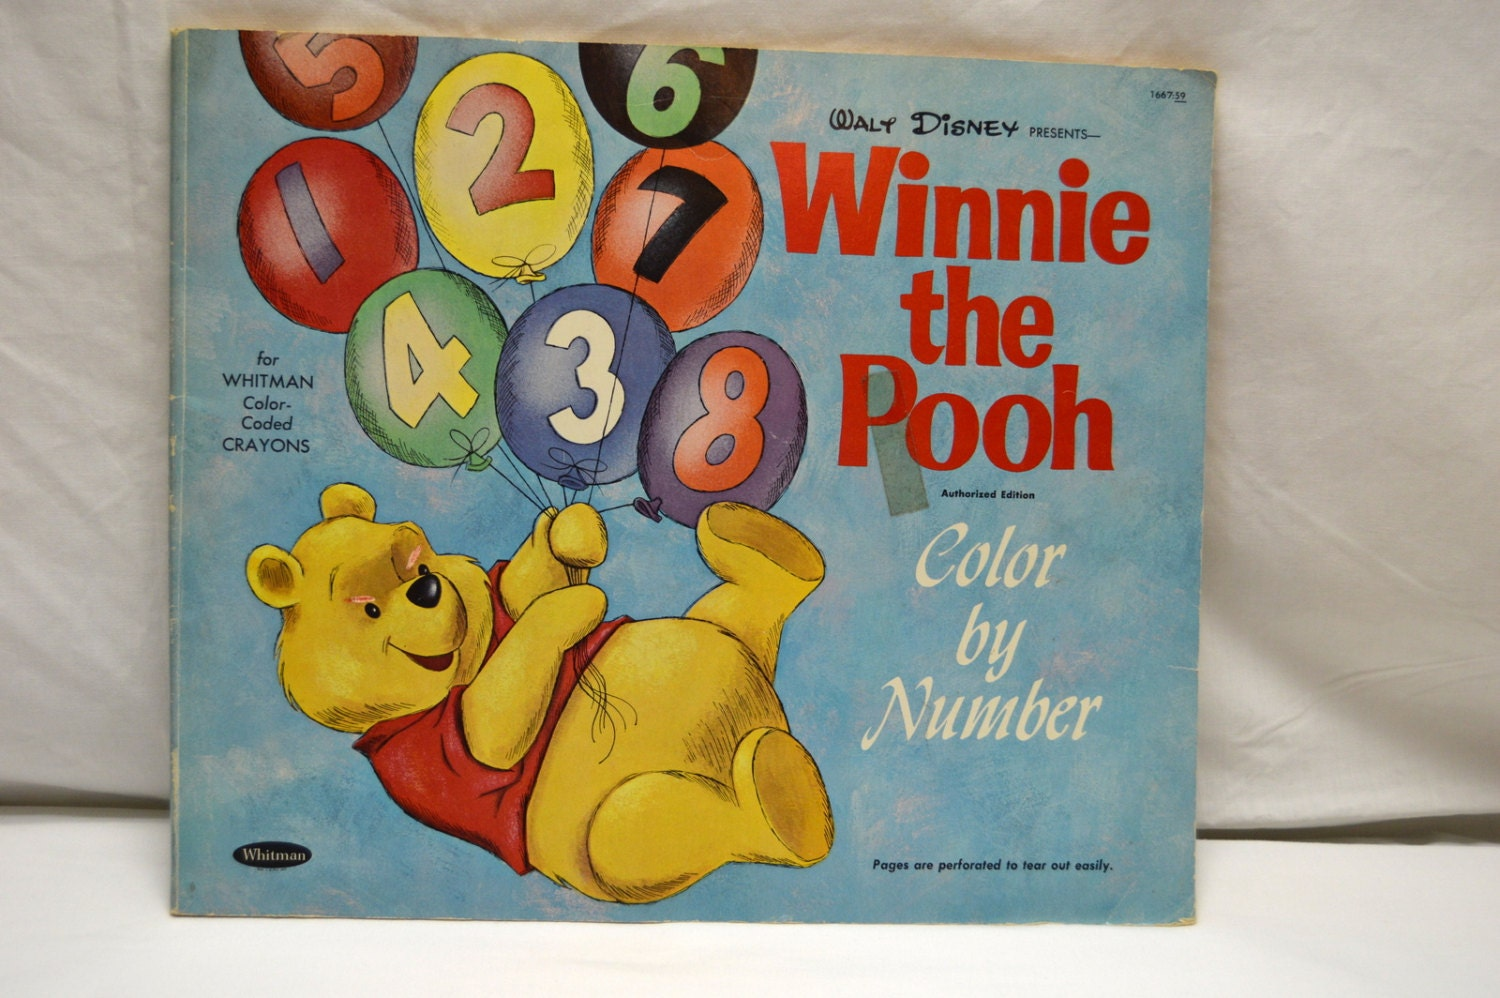 VTG Walt Disney Winnie the Pooh 1965 Whitman Color by Number | Etsy